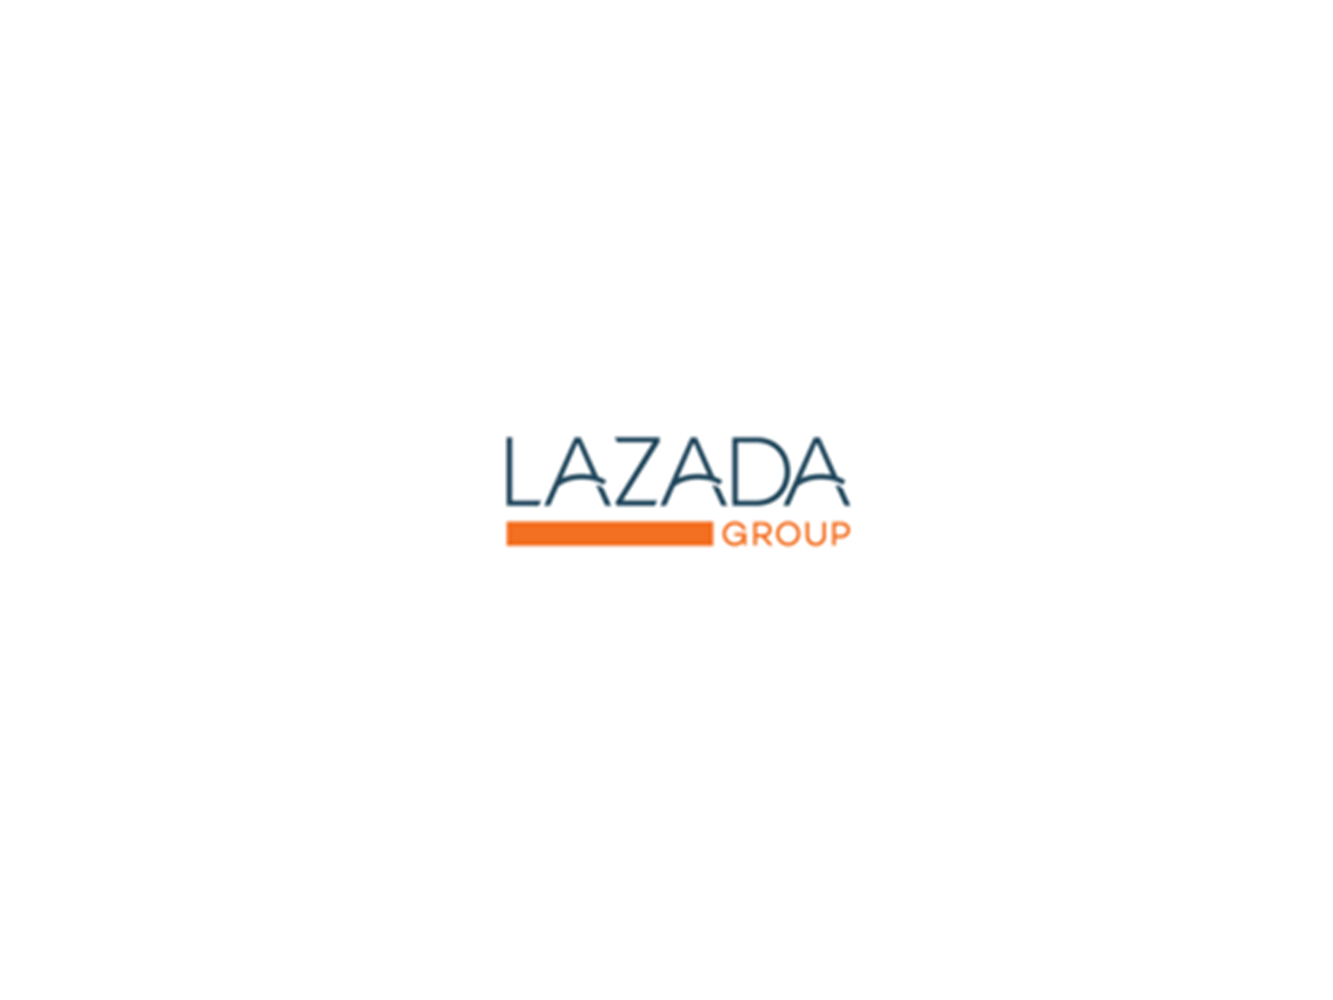 Lazada Discount Code | Get an extra 6% Off selected items with this Lazada Promo code